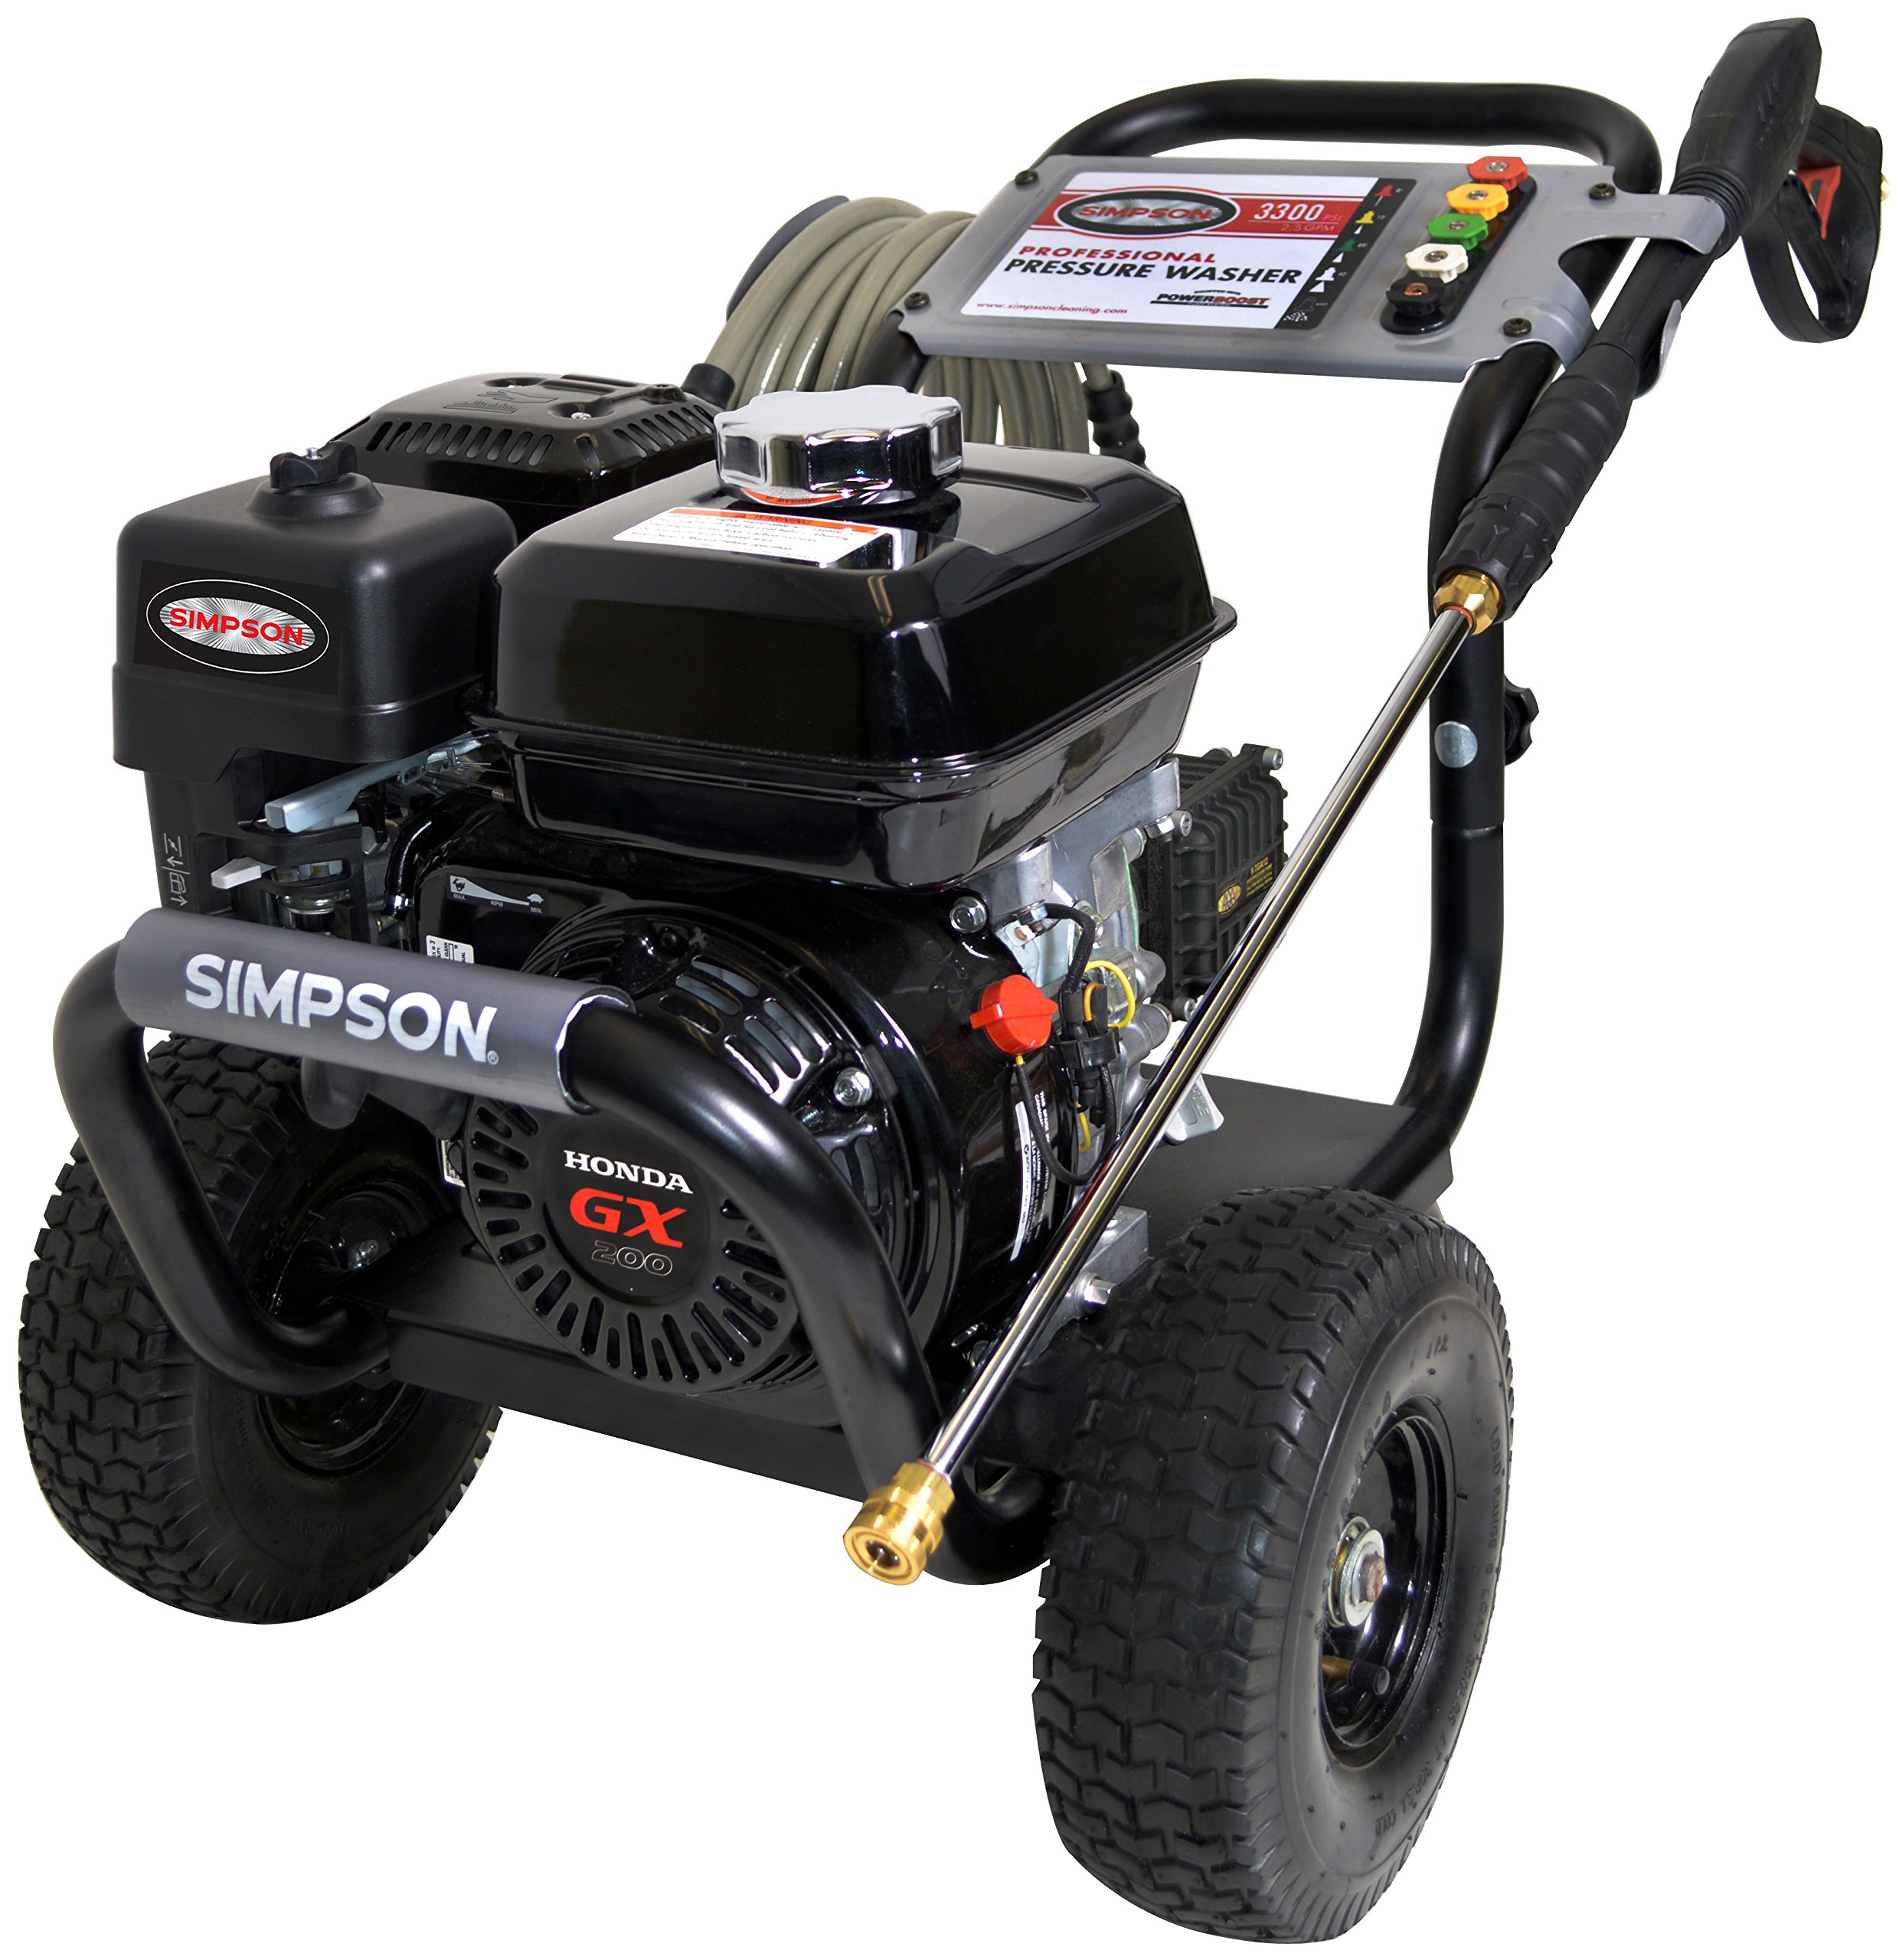 SIMPSON Cleaning PS3228-S 3200 PSI at 2.8 GPM Gas Pressure Washer Powered by HONDA with AAA Triplex Pump by Simpson Cleaning